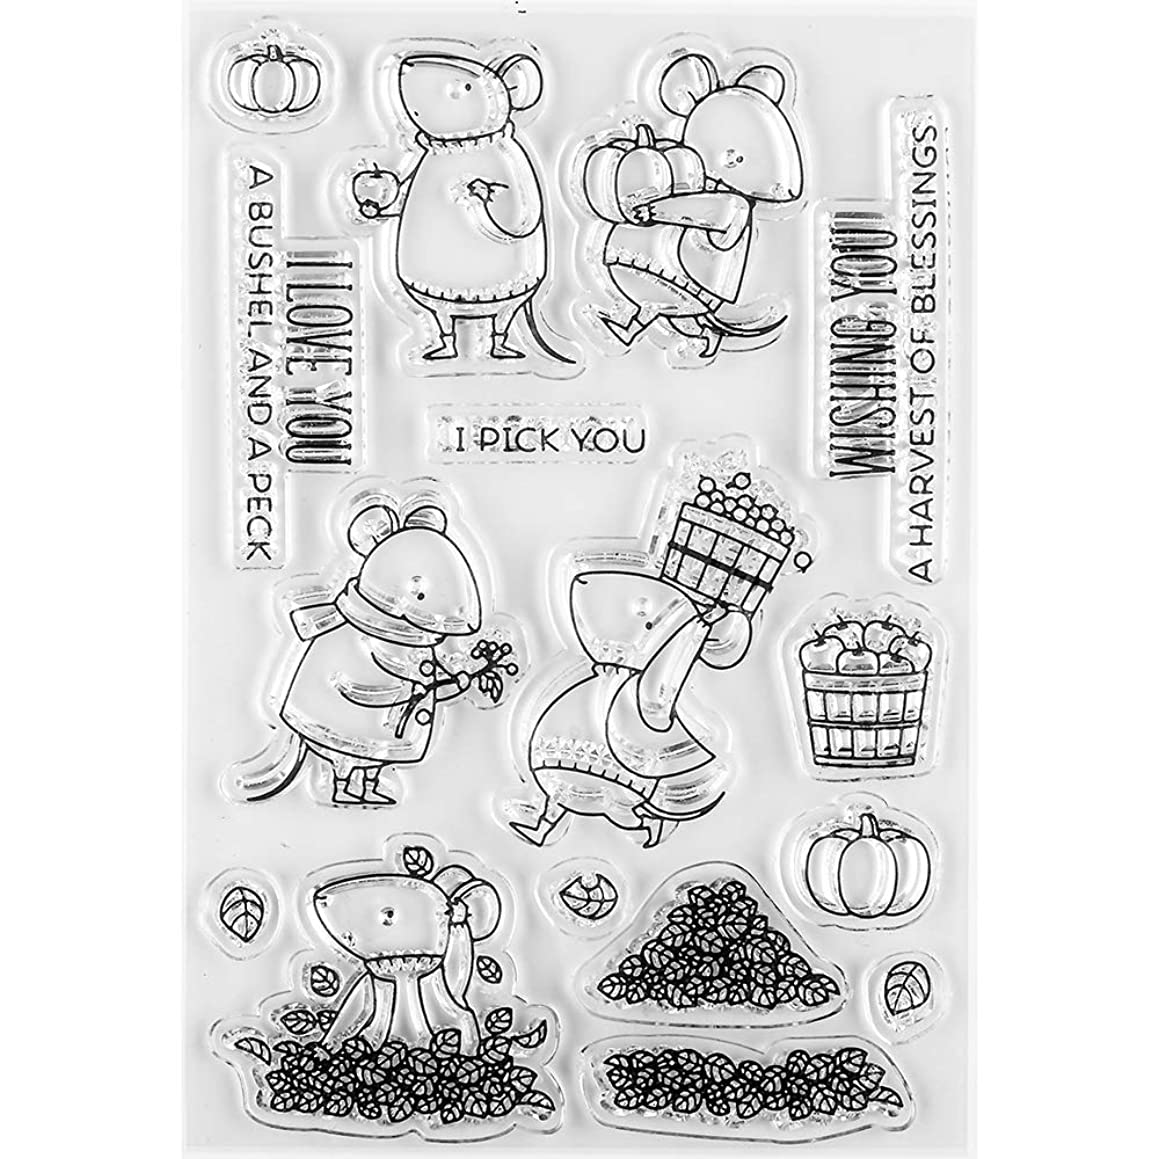 MaGuo Autumn Garden Clear Stamps Mouse in Good Harvest for Paper Craft Decoration and DIY Scrapbooking wlqgy16377